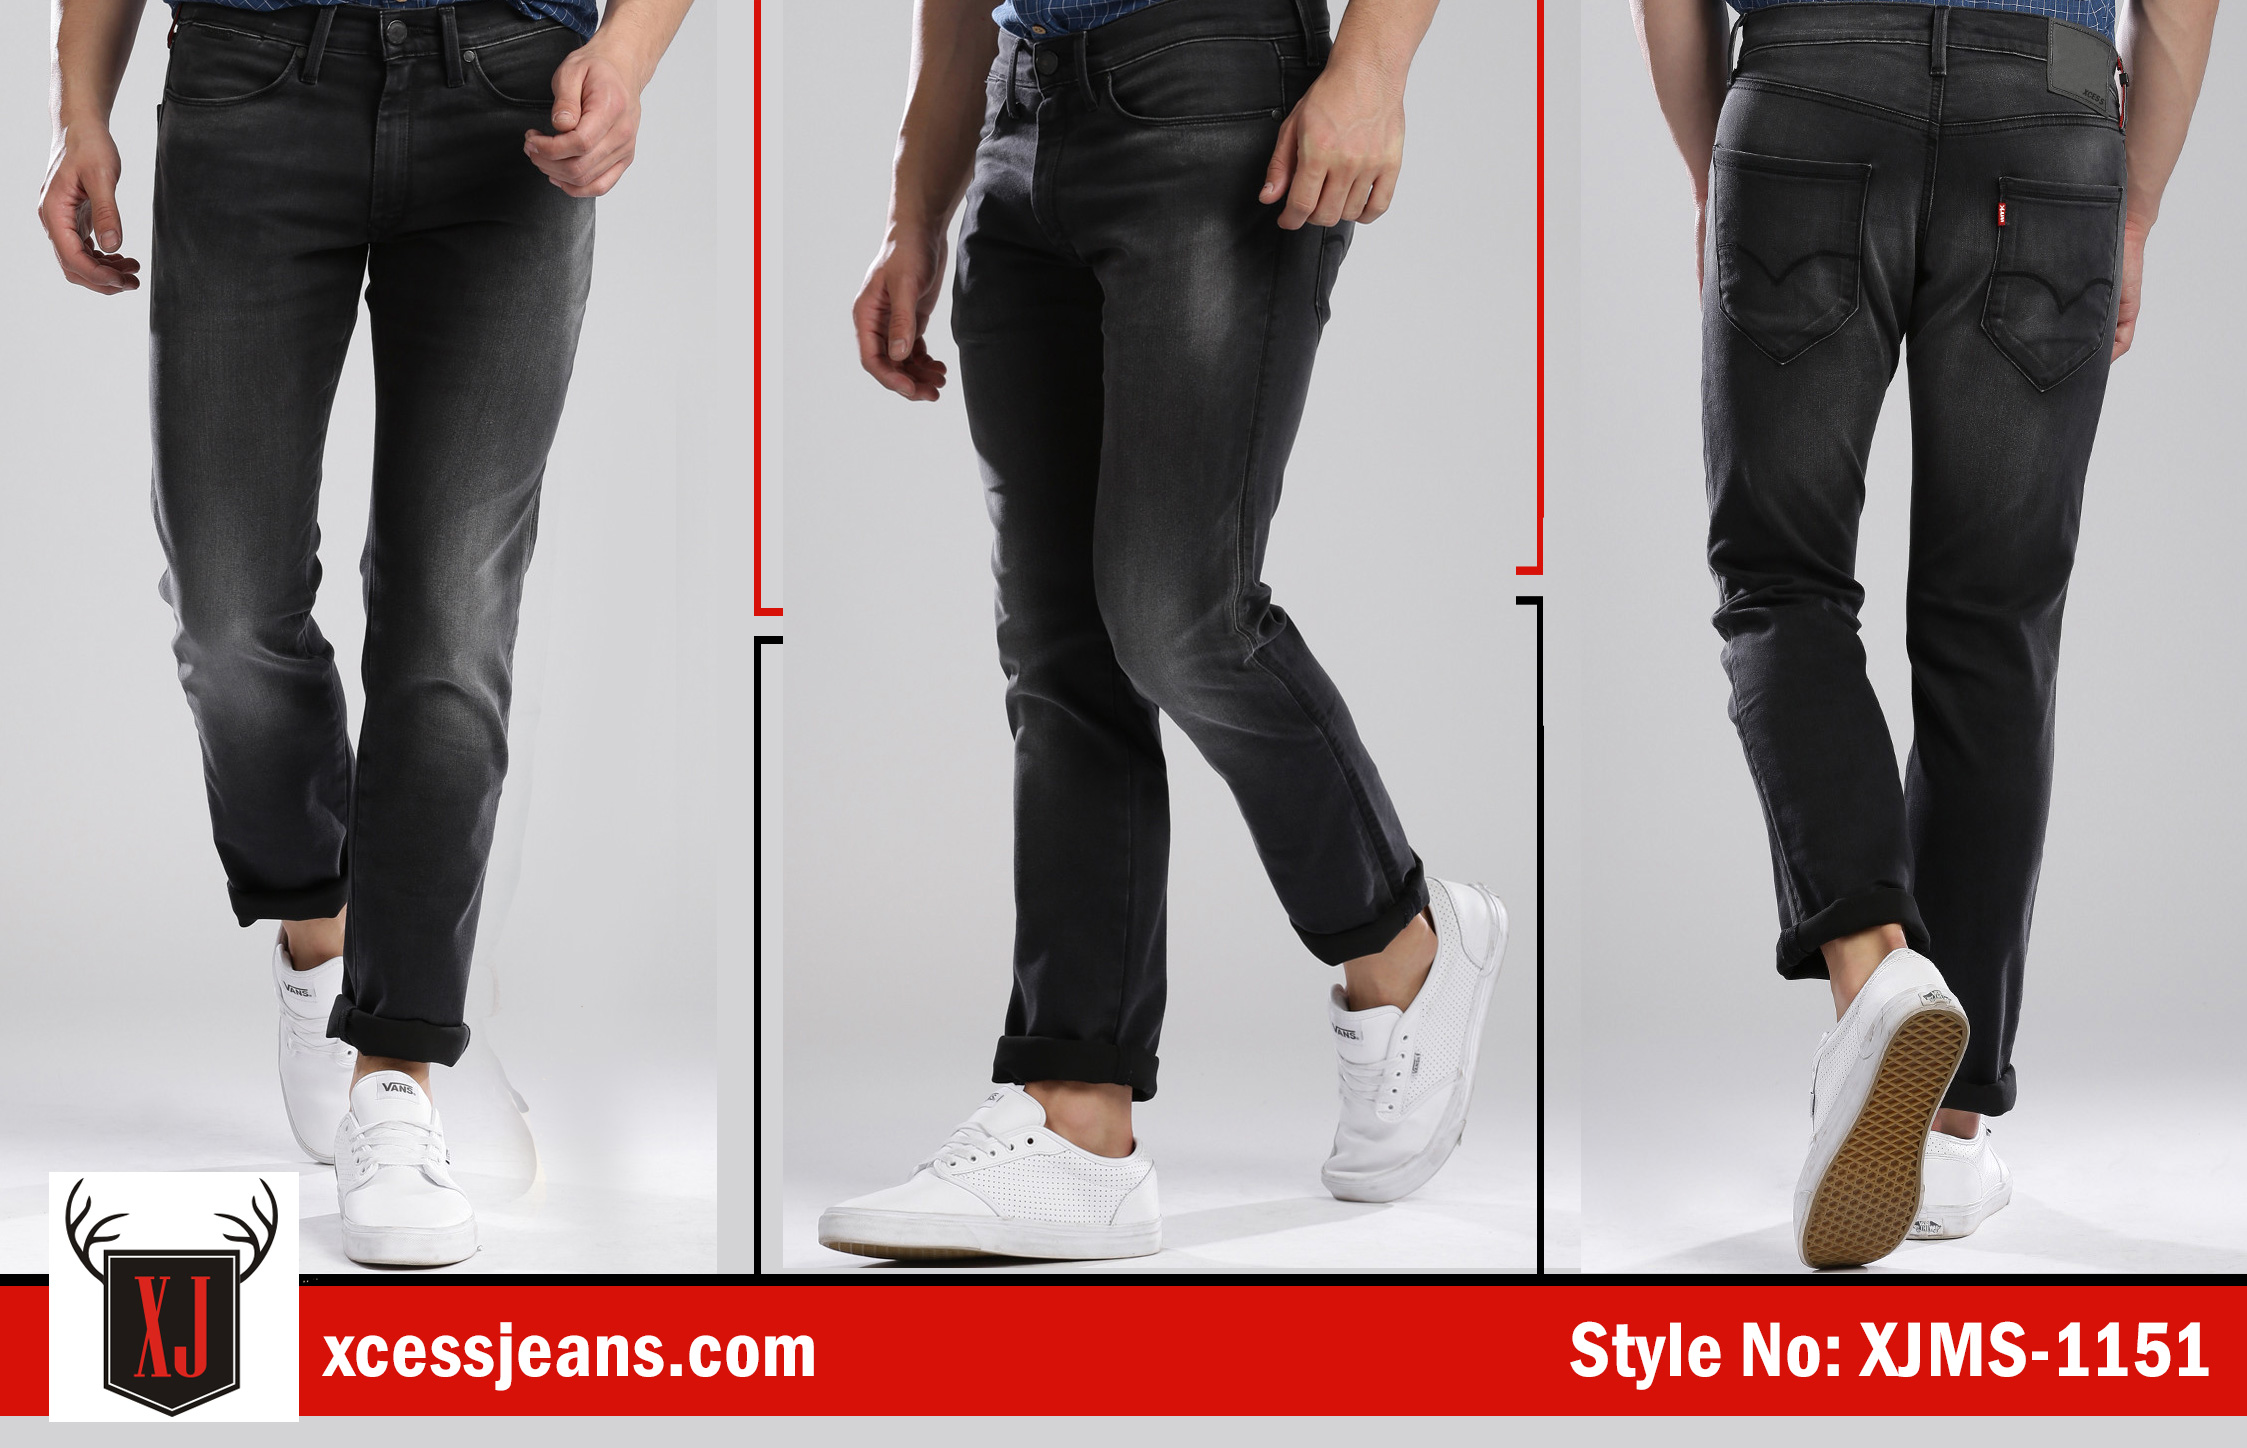 bcf4c60372 High-Quality and Cost-Effective Delhi Jeans Wholesale Market – Xcess ...